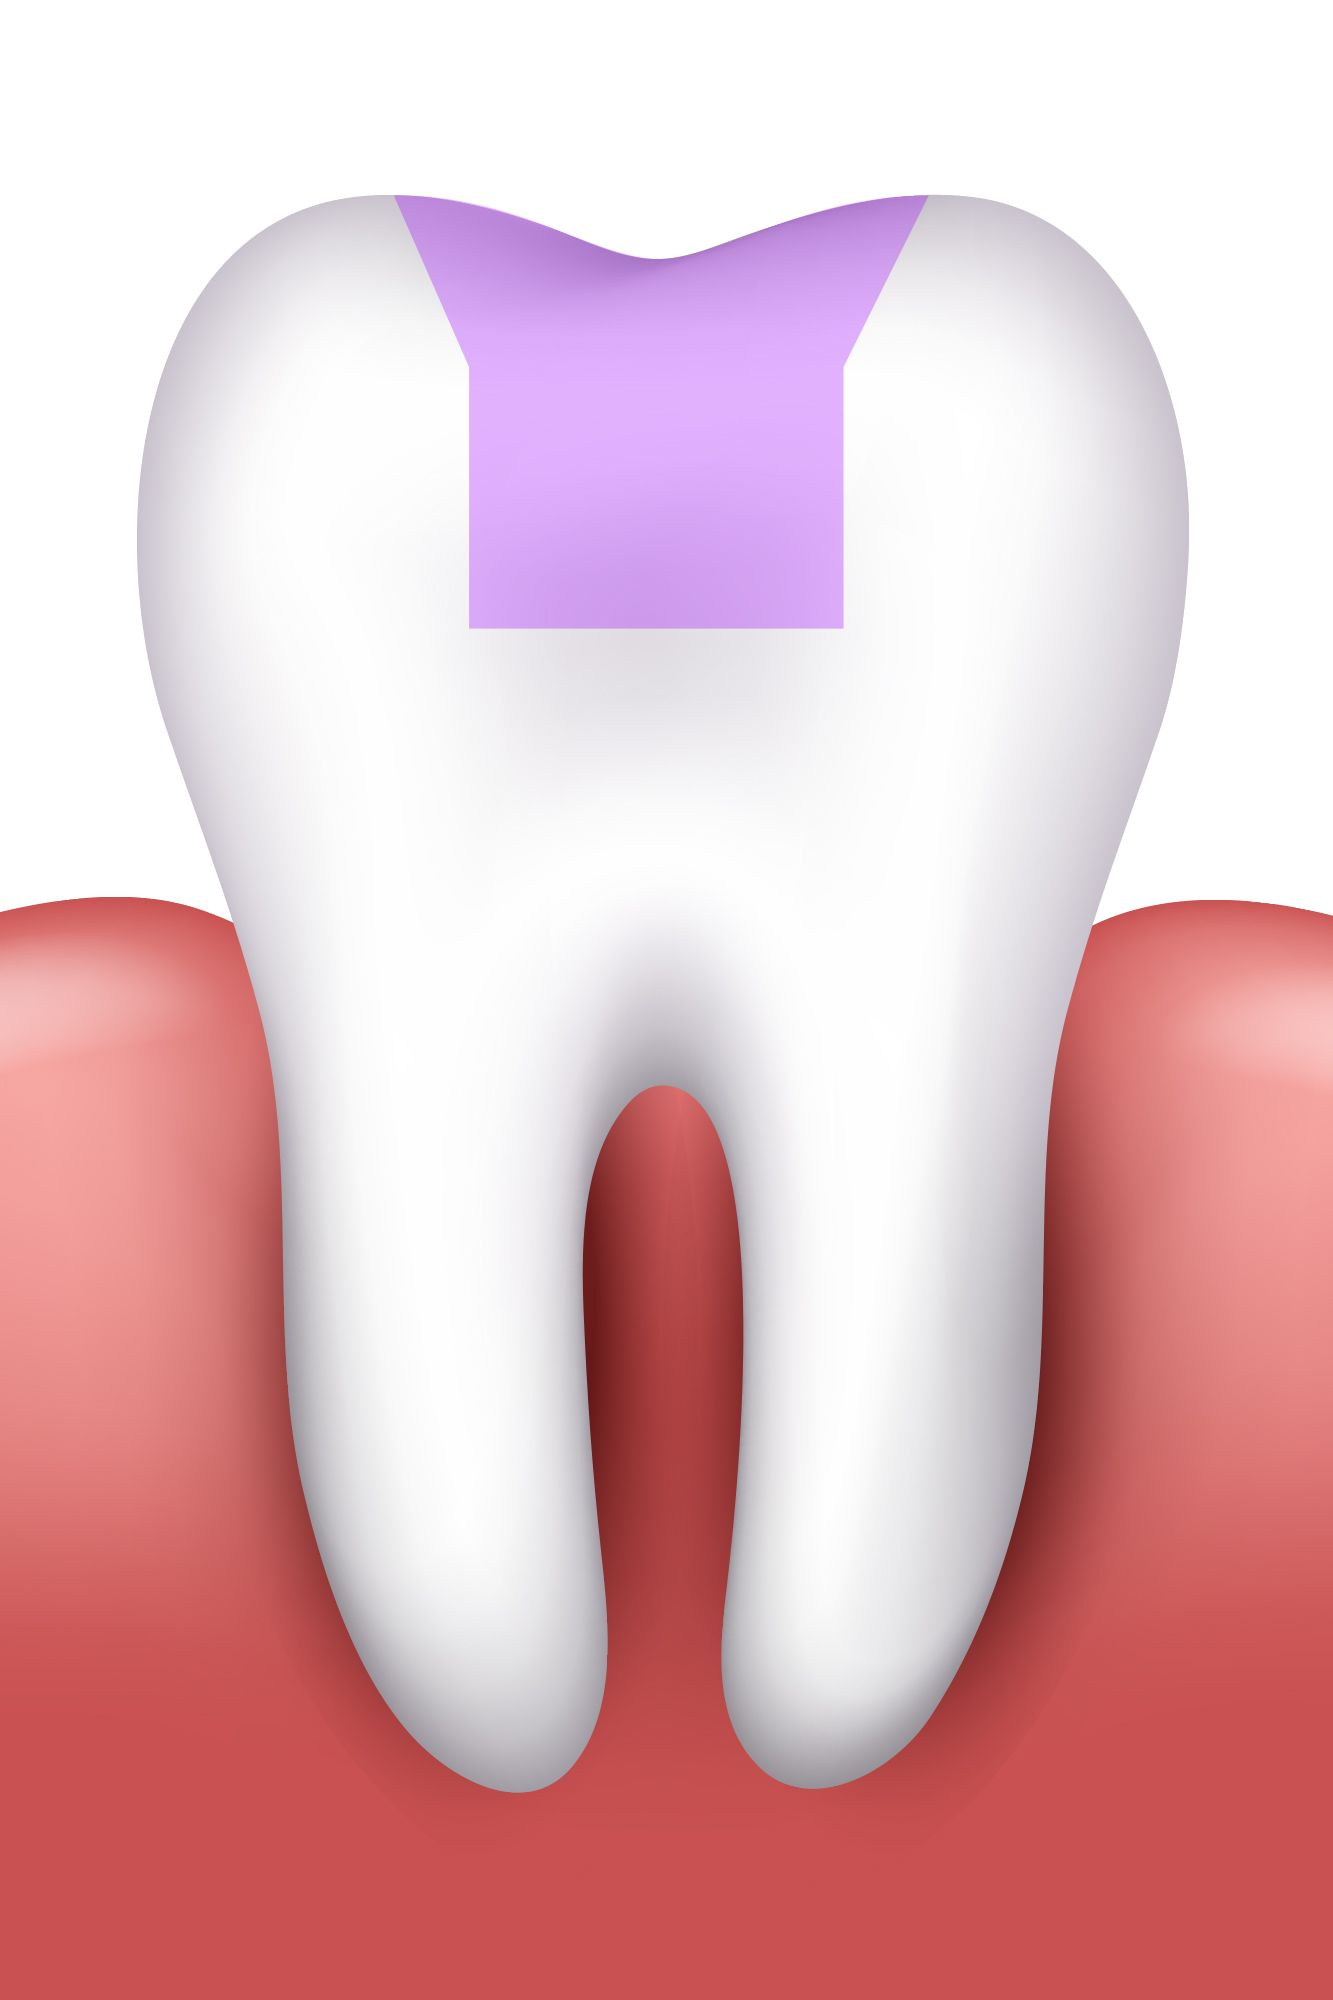 An illustration of a tooth that has been restored with a dental inlay